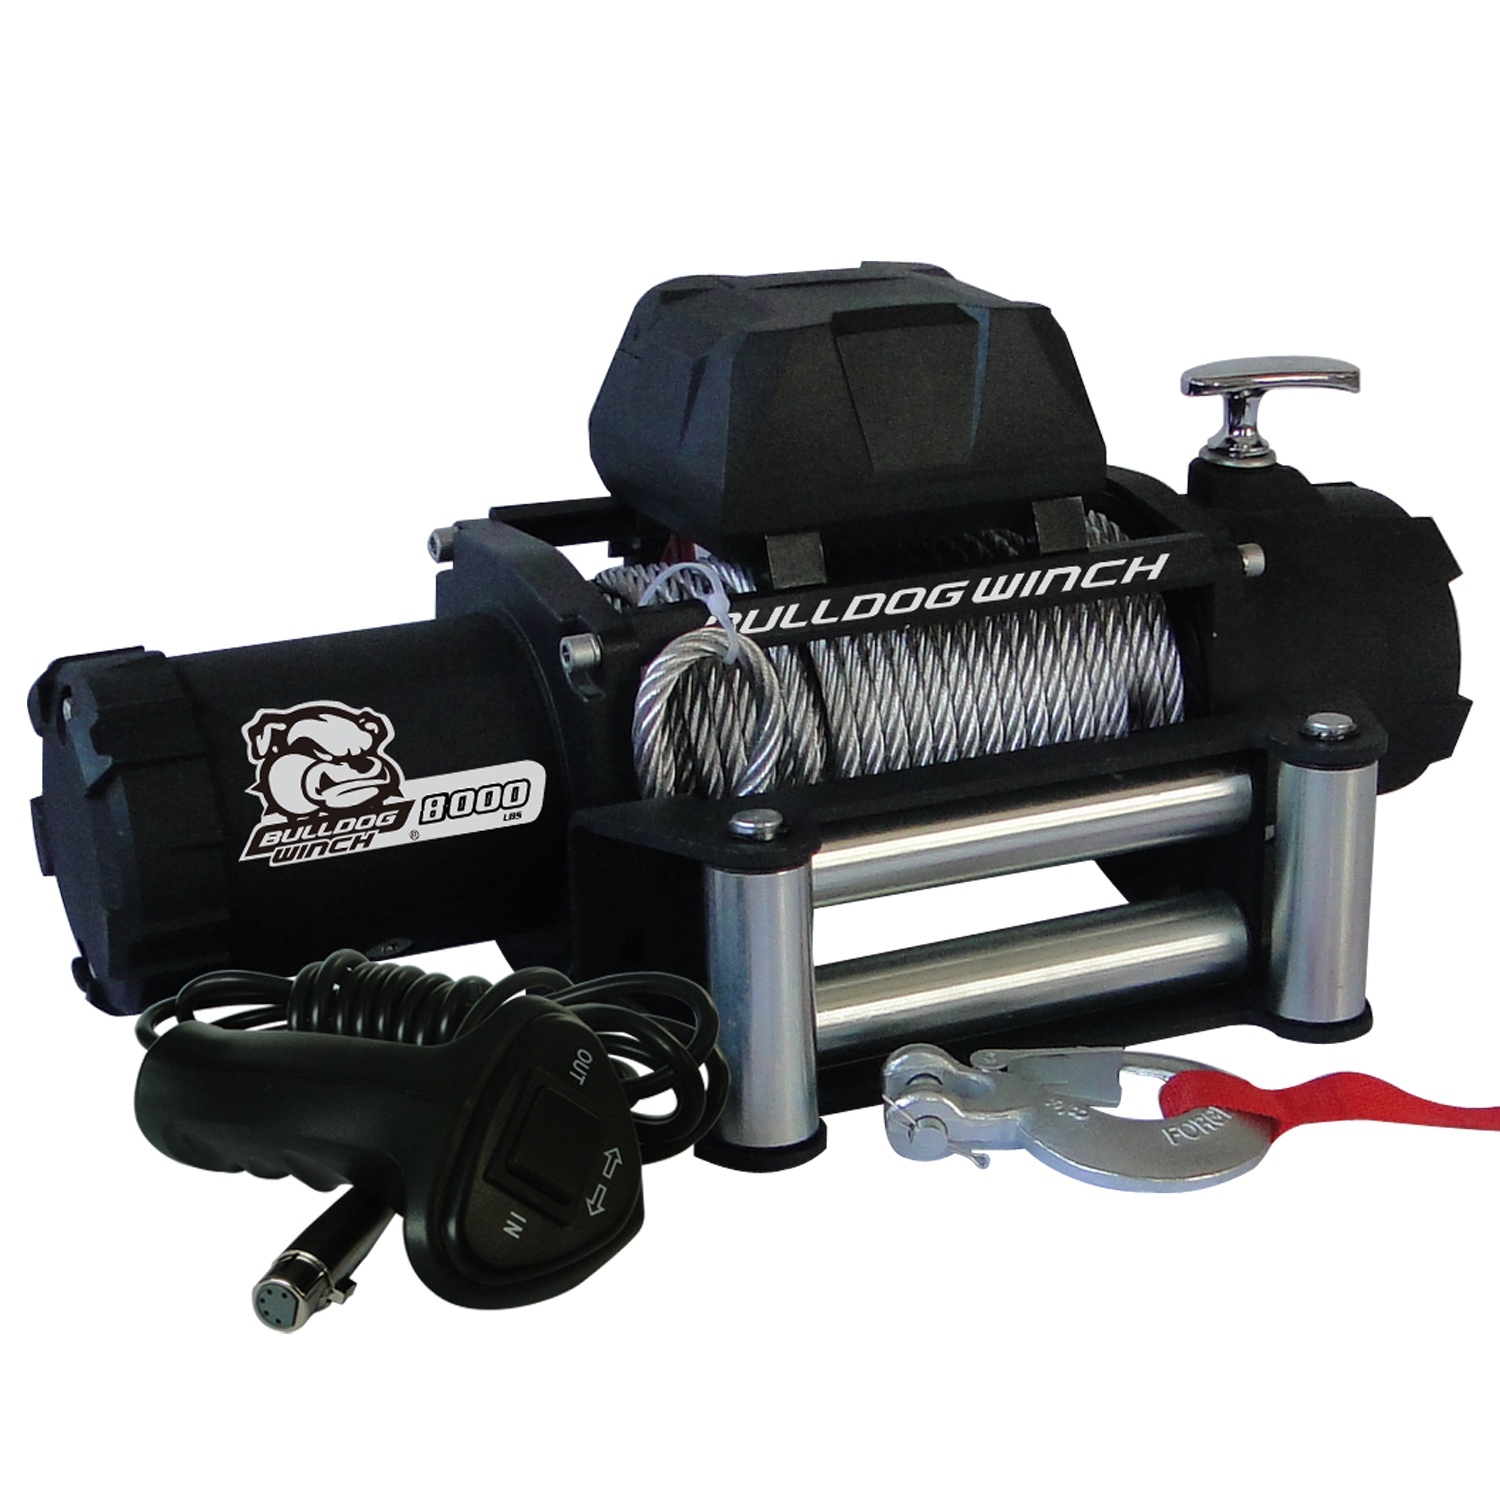 Bulldog Winch 8,000lb Winch w/ Wire Rope